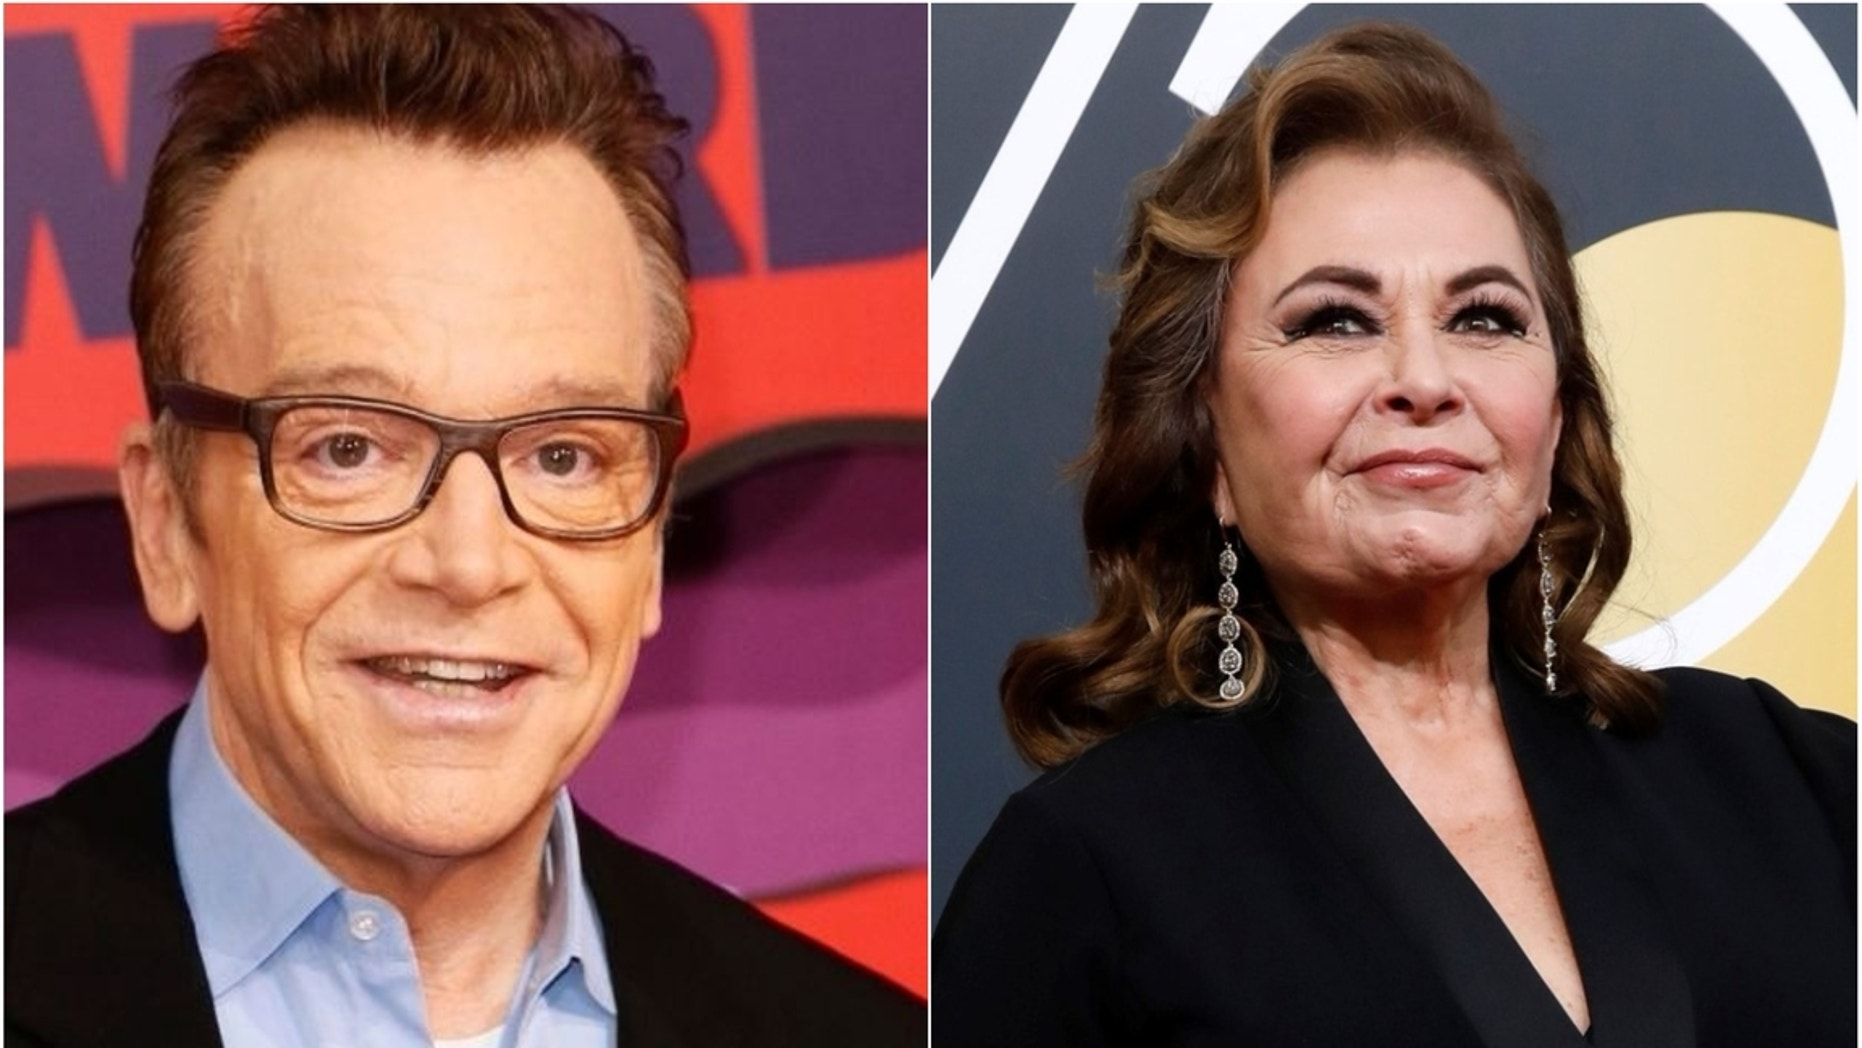 """Tom Arnold is dishing on his ex-wife Roseanne Barr before the """"Roseanne"""" revival is due to premiere."""